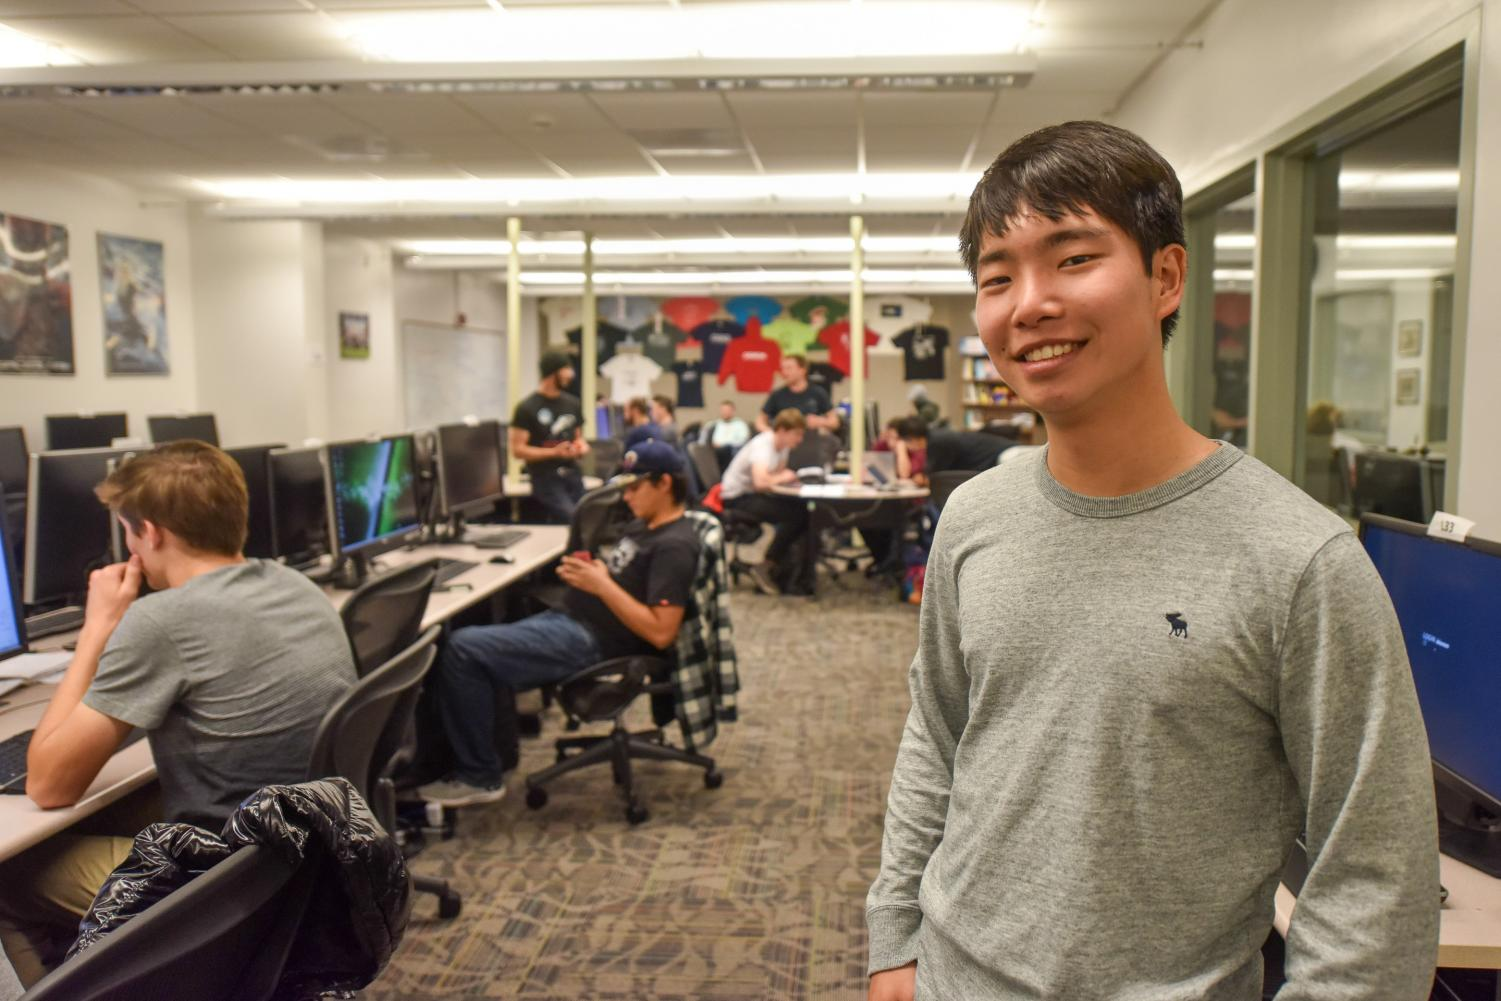 Kevin Ni, president of the Computer Science Club and secretary of the Associated Student Government, poses at the computer science lab in the Humanities Building on Thursday, Dec. 5, at City College in Santa Barbara Calif. During the semester, Ni can often be found in the lab working on projects and conversing with peers.